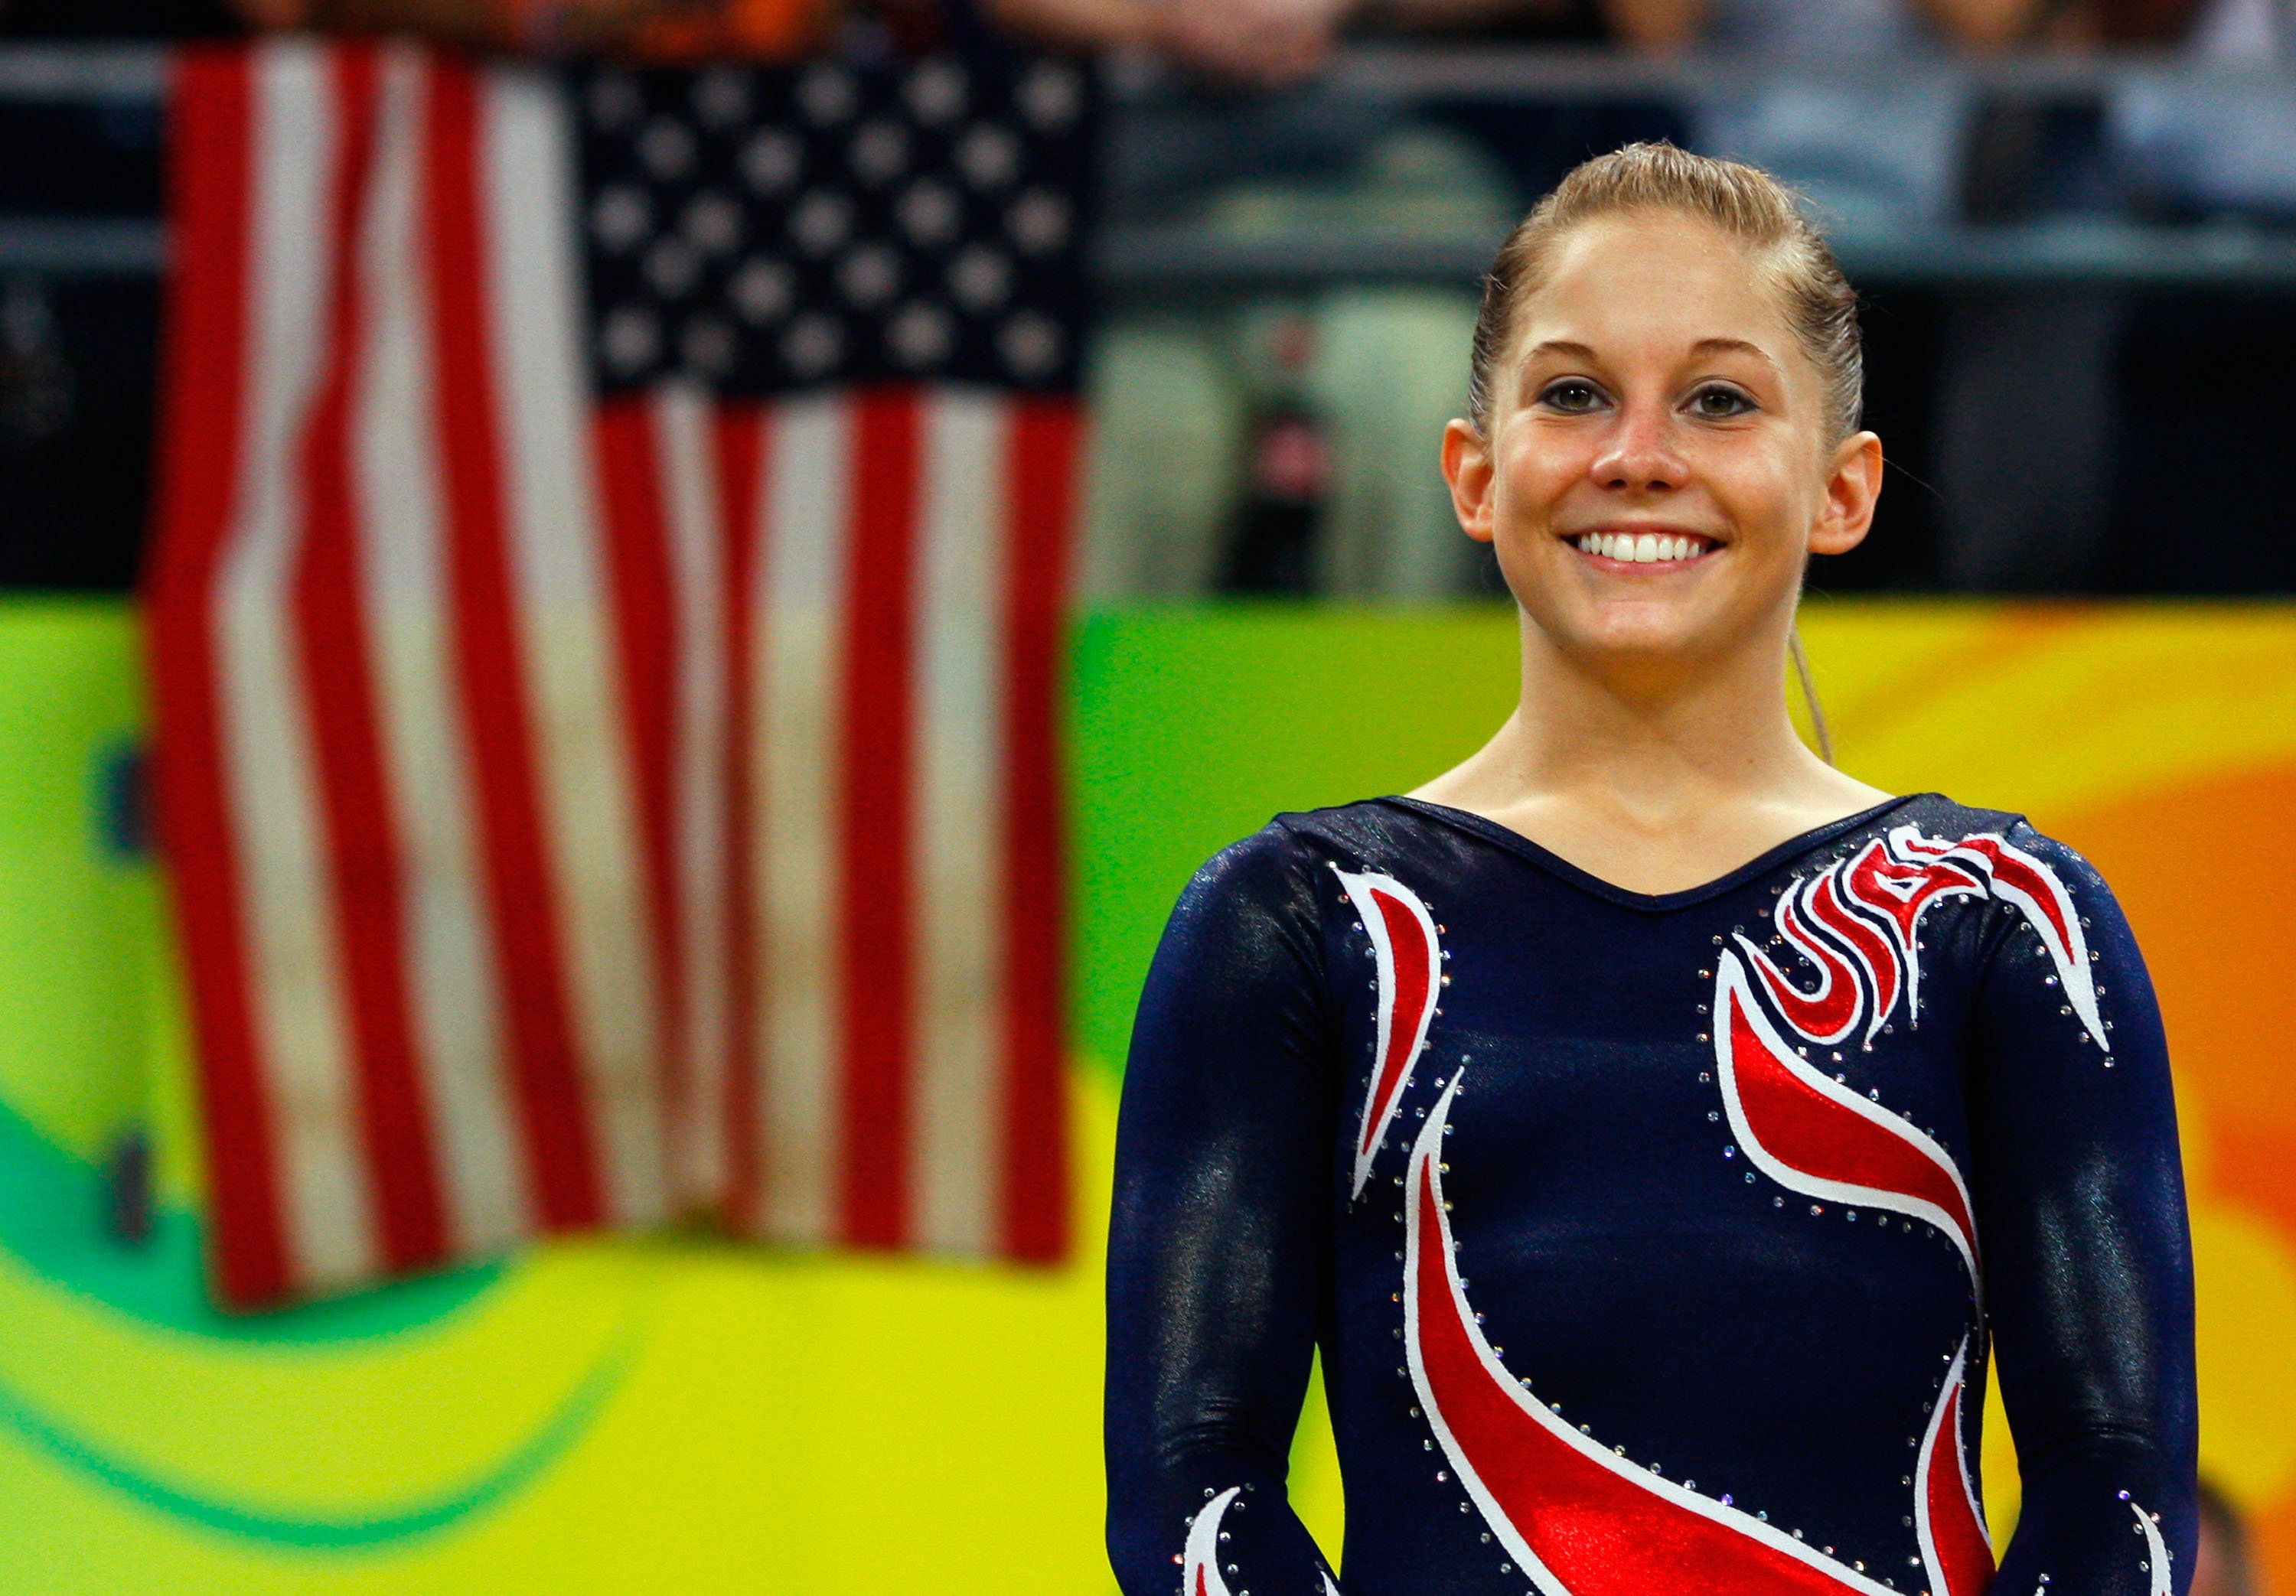 Olympic gymnast Shawn Johnson reveals she suffered a miscarriage